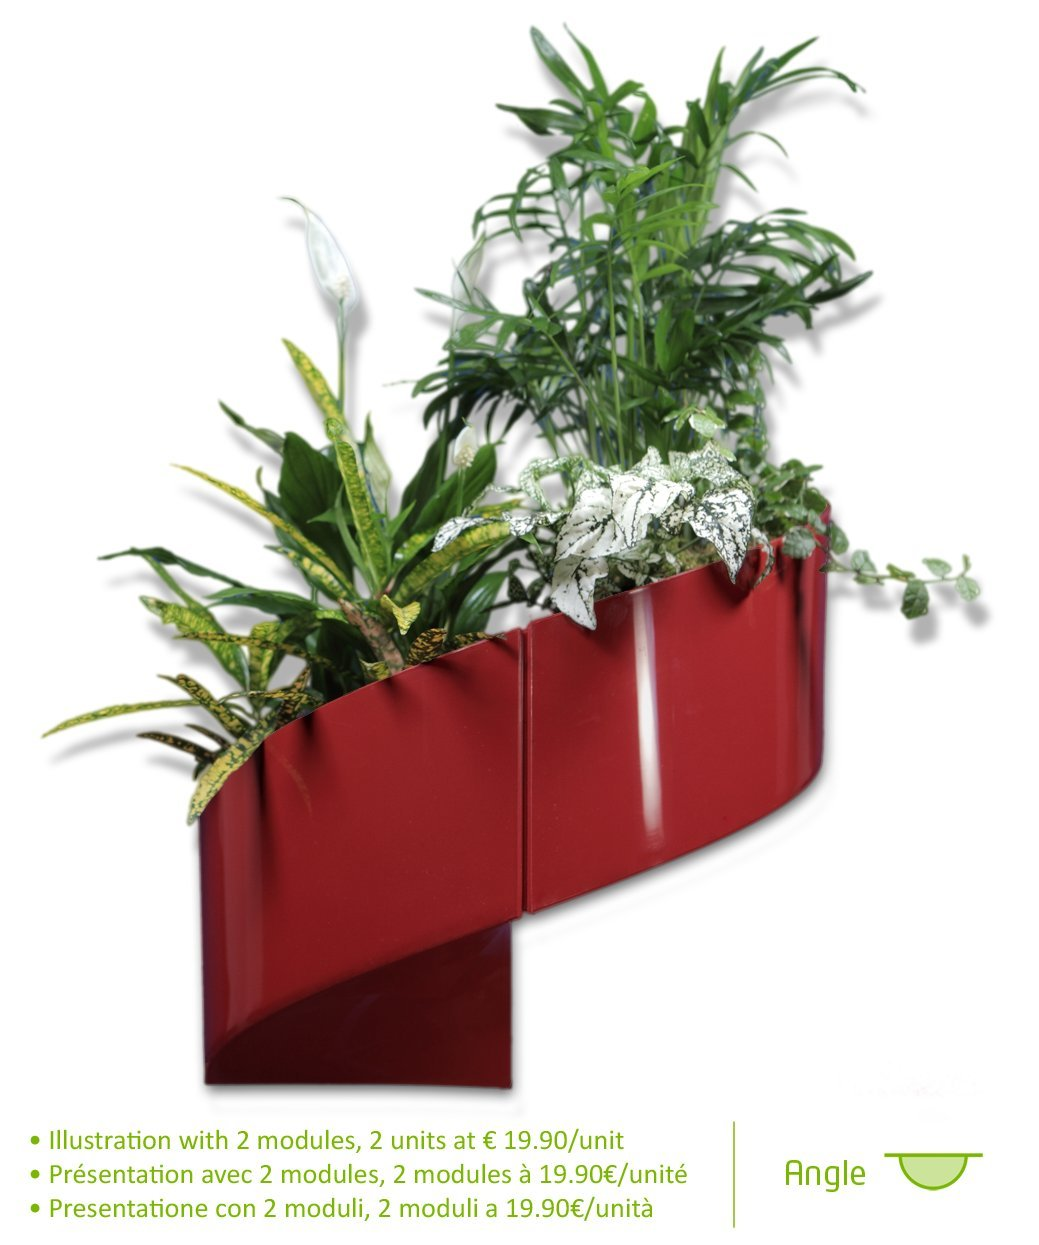 Plantes murales interieur design na06 jornalagora for Plante design d interieur